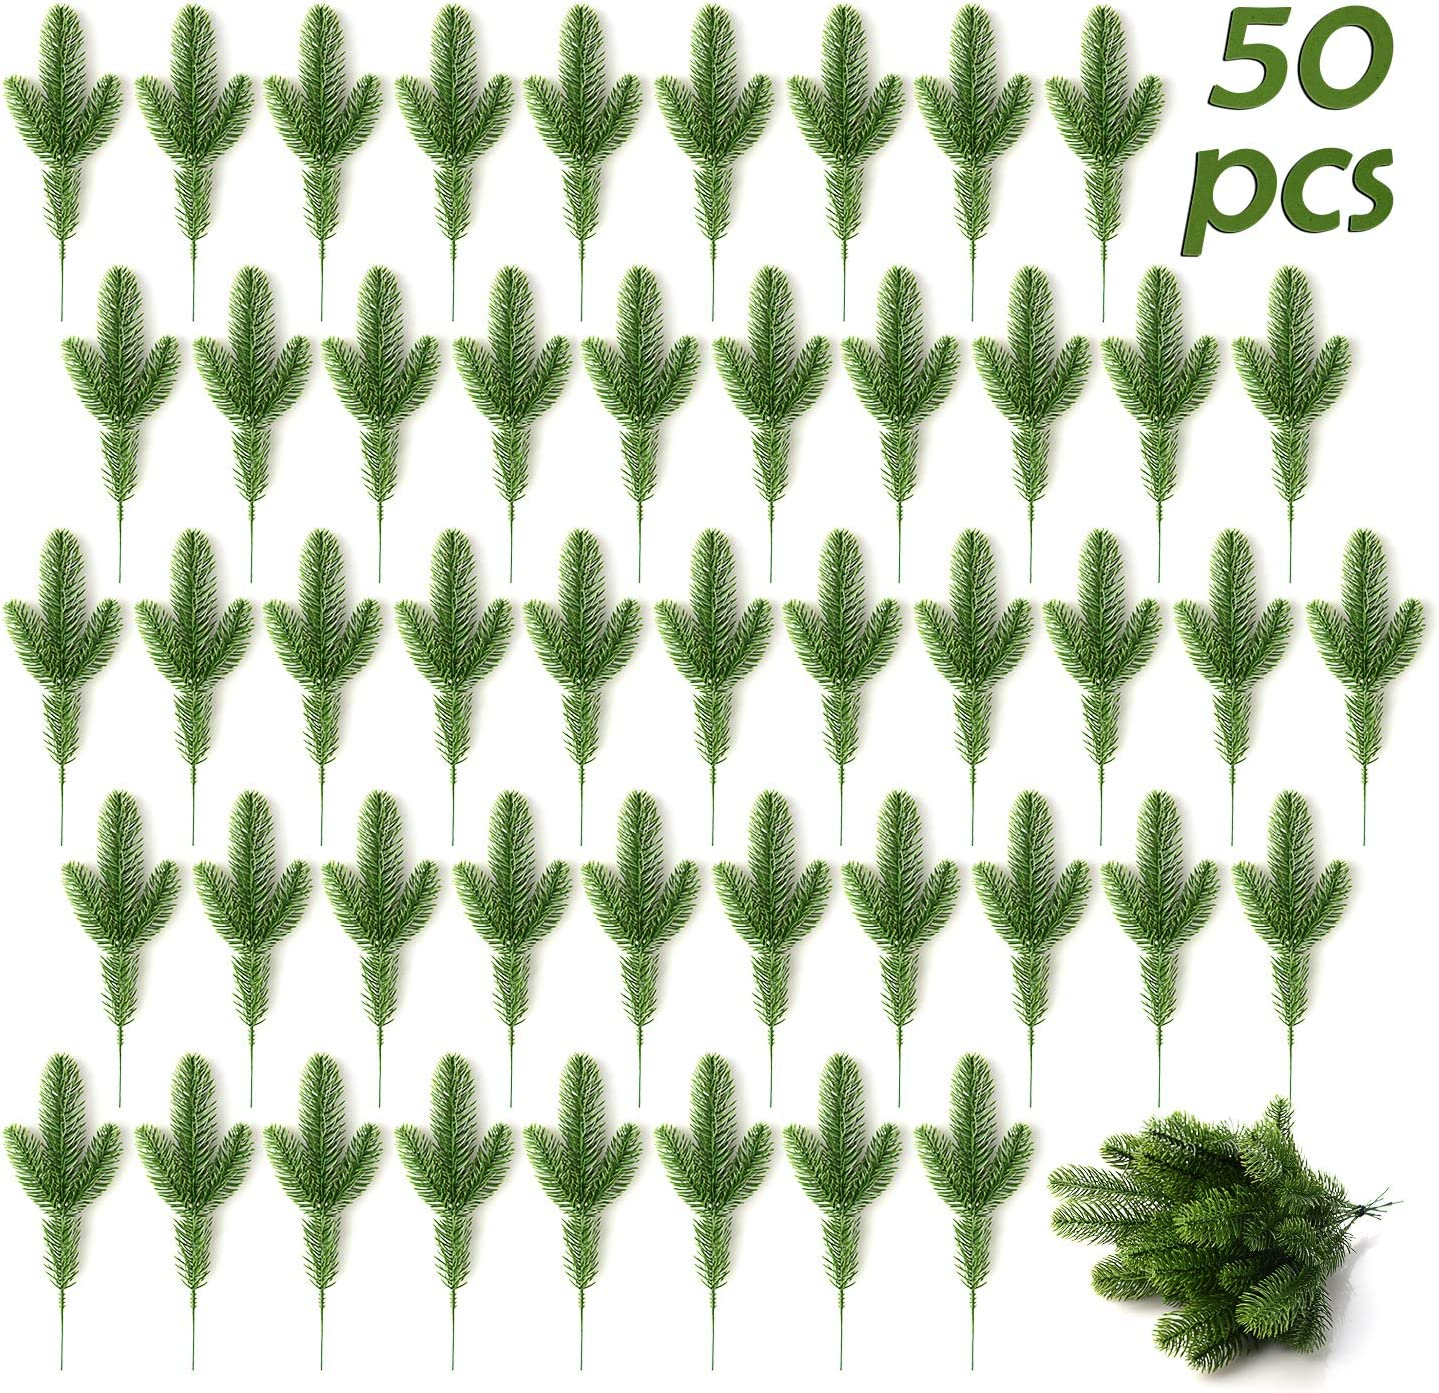 Artificial Pine NEW Branches 30 Free shipping anywhere in the nation 50Pcs Christmas Cedar Tree